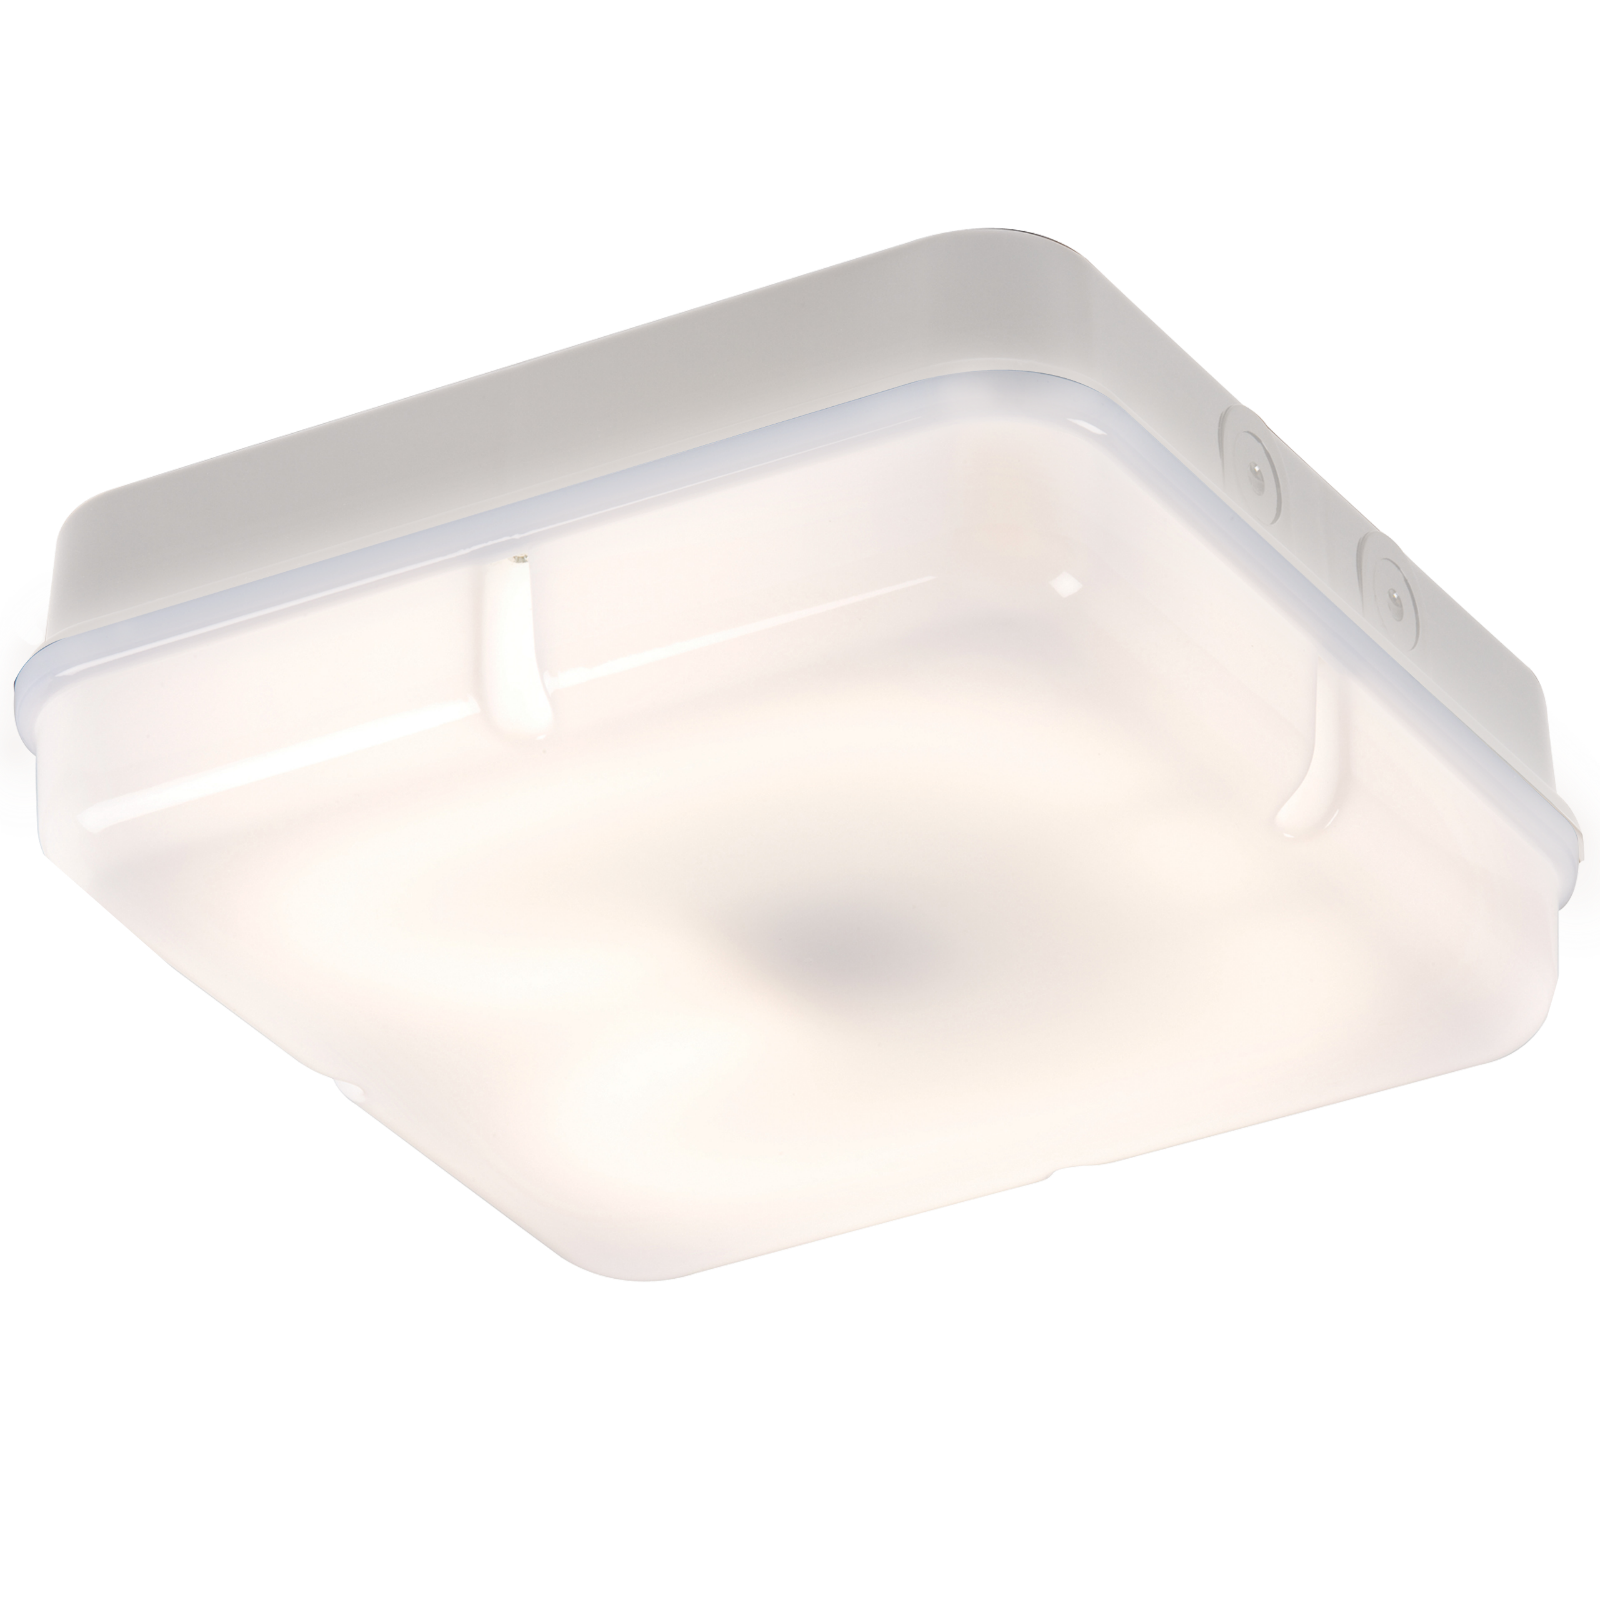 IP65 28W HF Square Bulkhead with Opal Diffuser and White Base